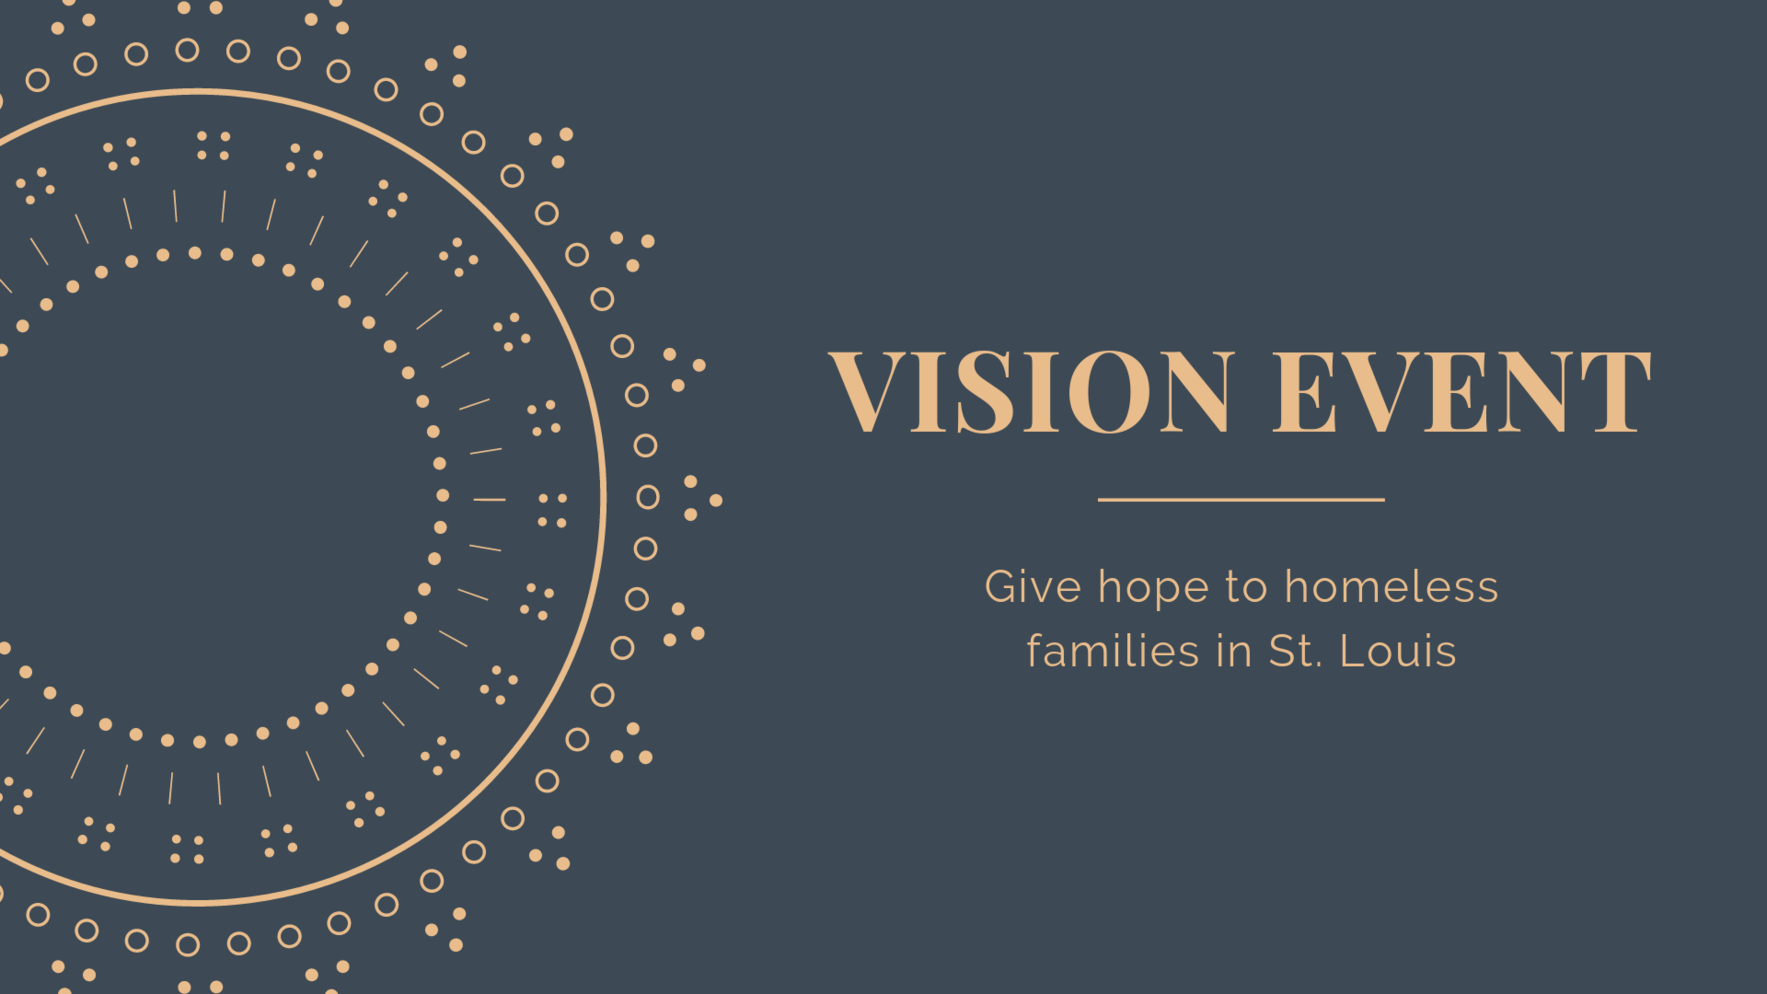 Vision Event image